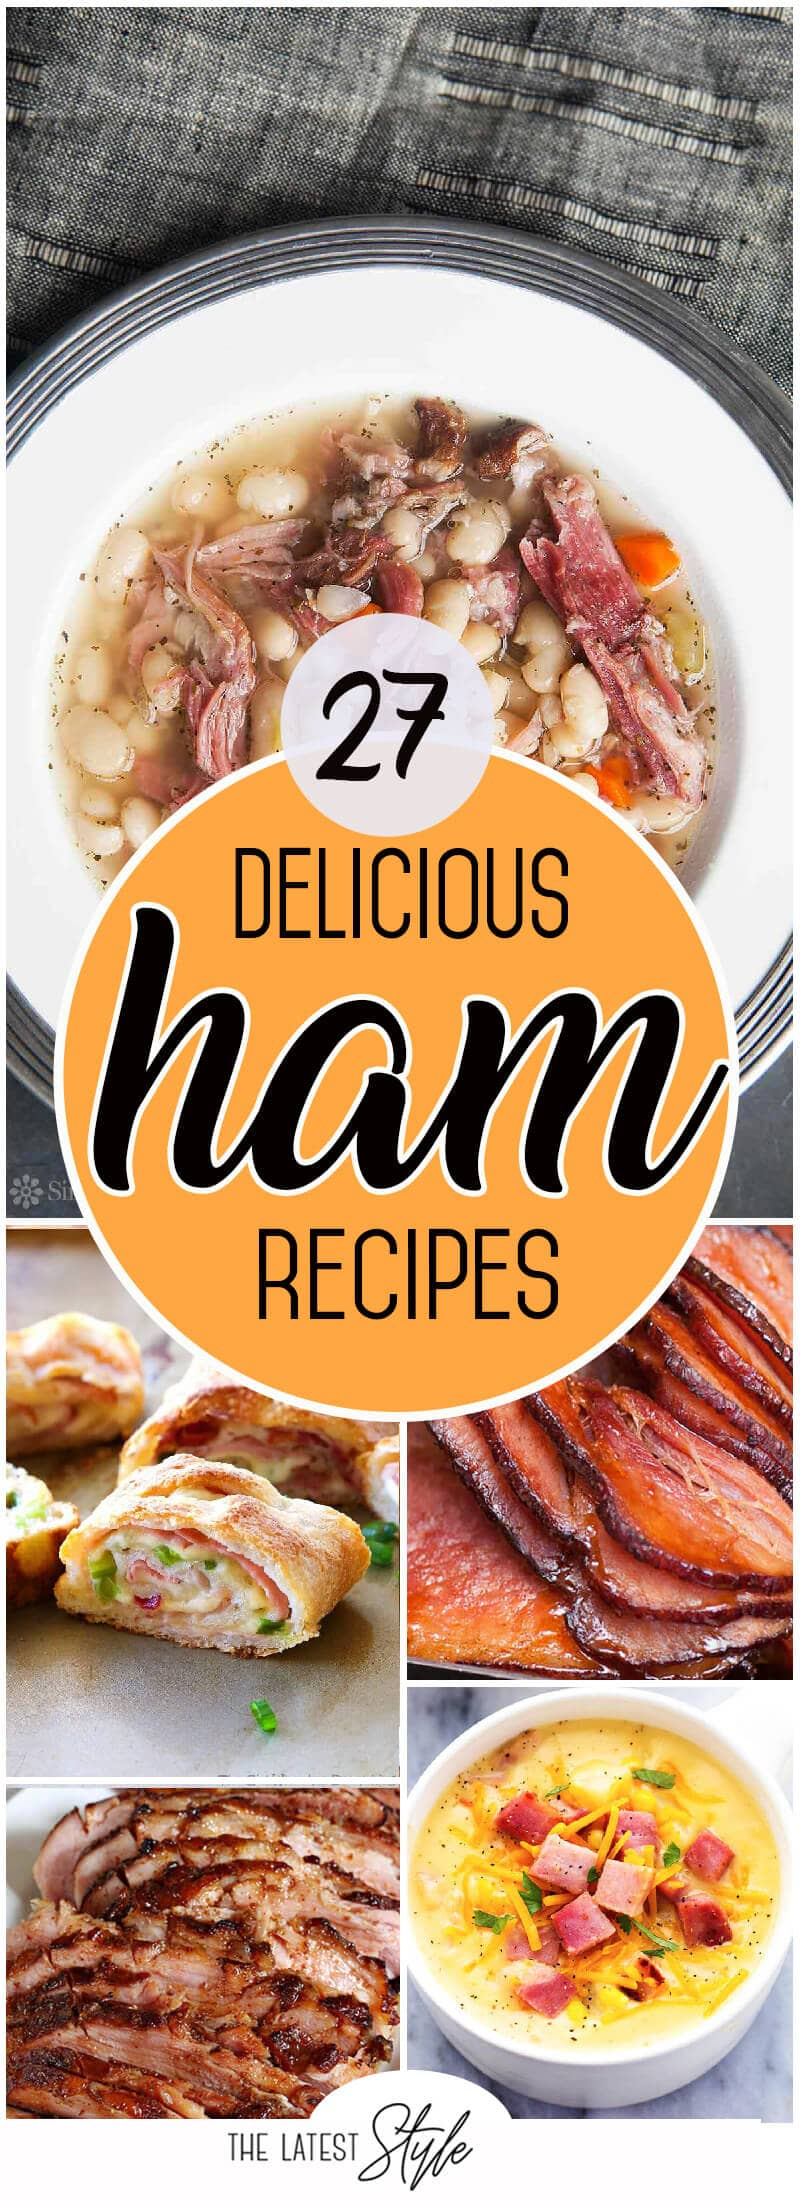 27 Delicious Ham Recipes the Whole Family will Love this Easter